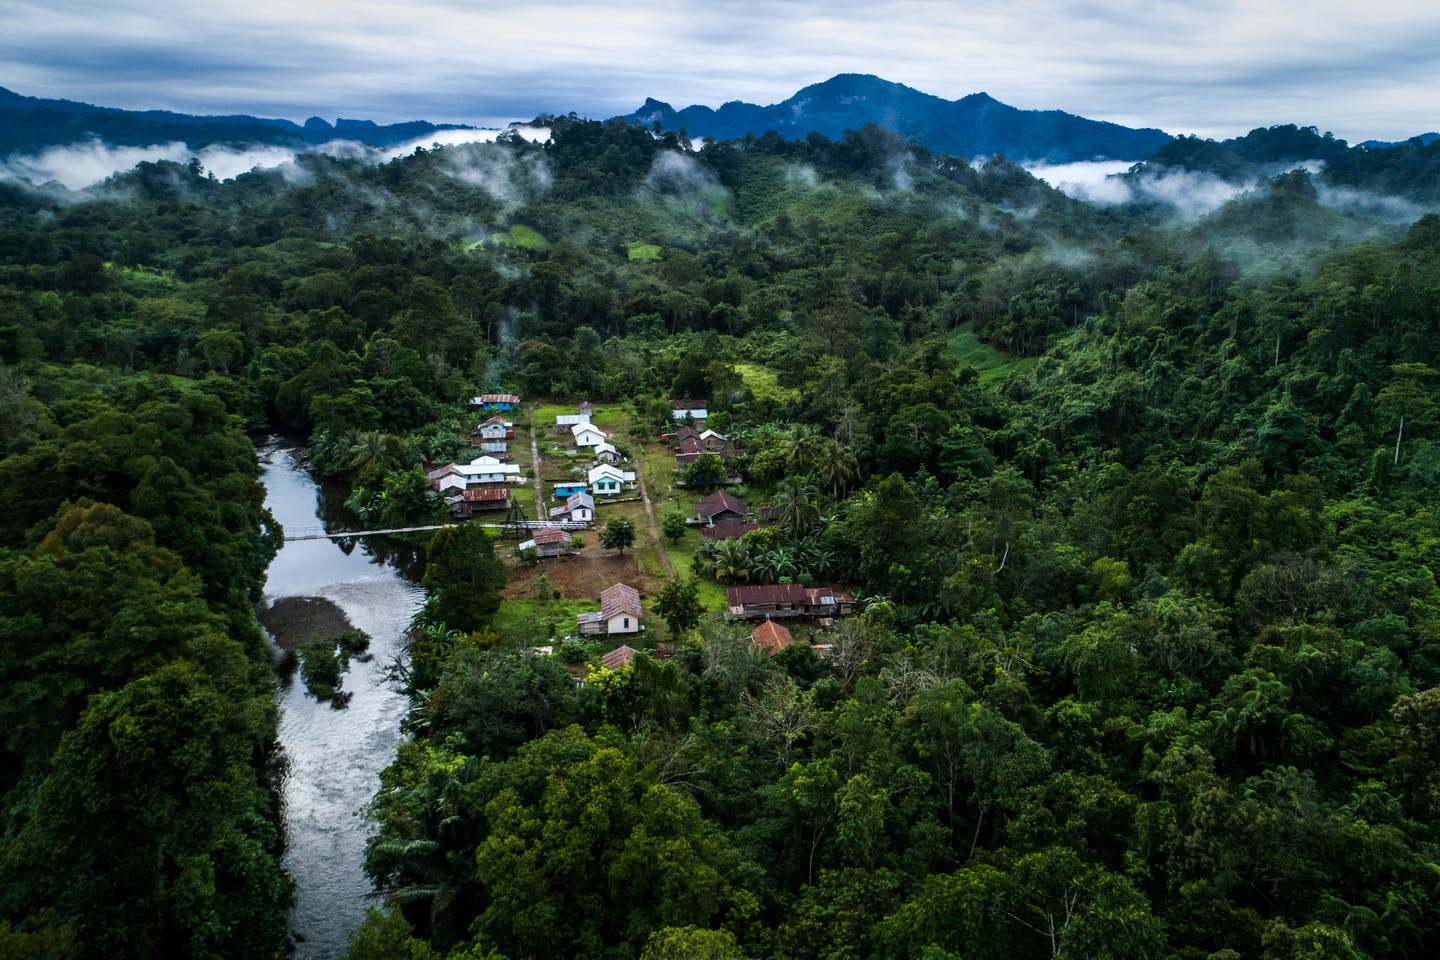 Global rainforest loss 'relentless' in 2020, but SE Asia offers hope